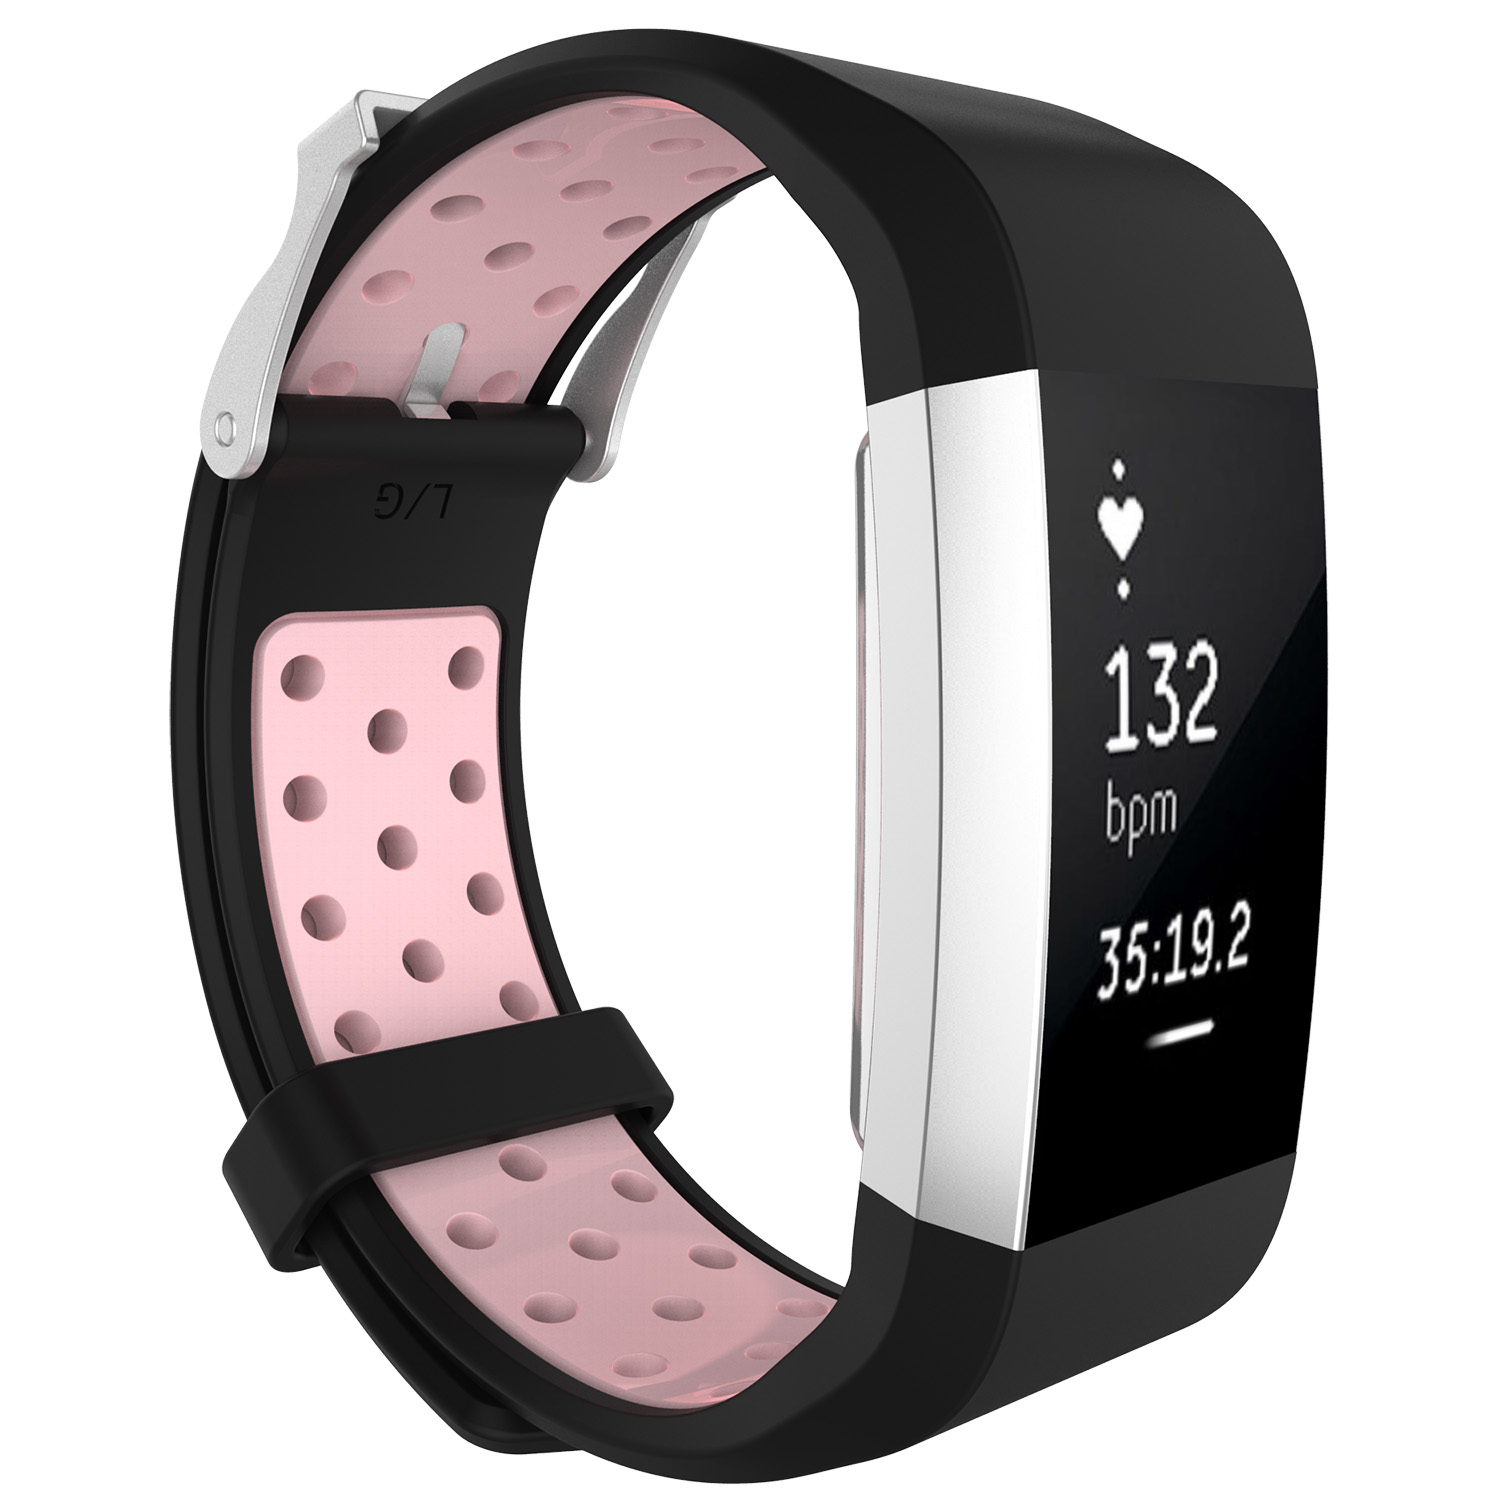 Replacement-Silicone-Wristband-Watch-Strap-Bands-Bracelet-For-Fitbit-Charge-2 thumbnail 78